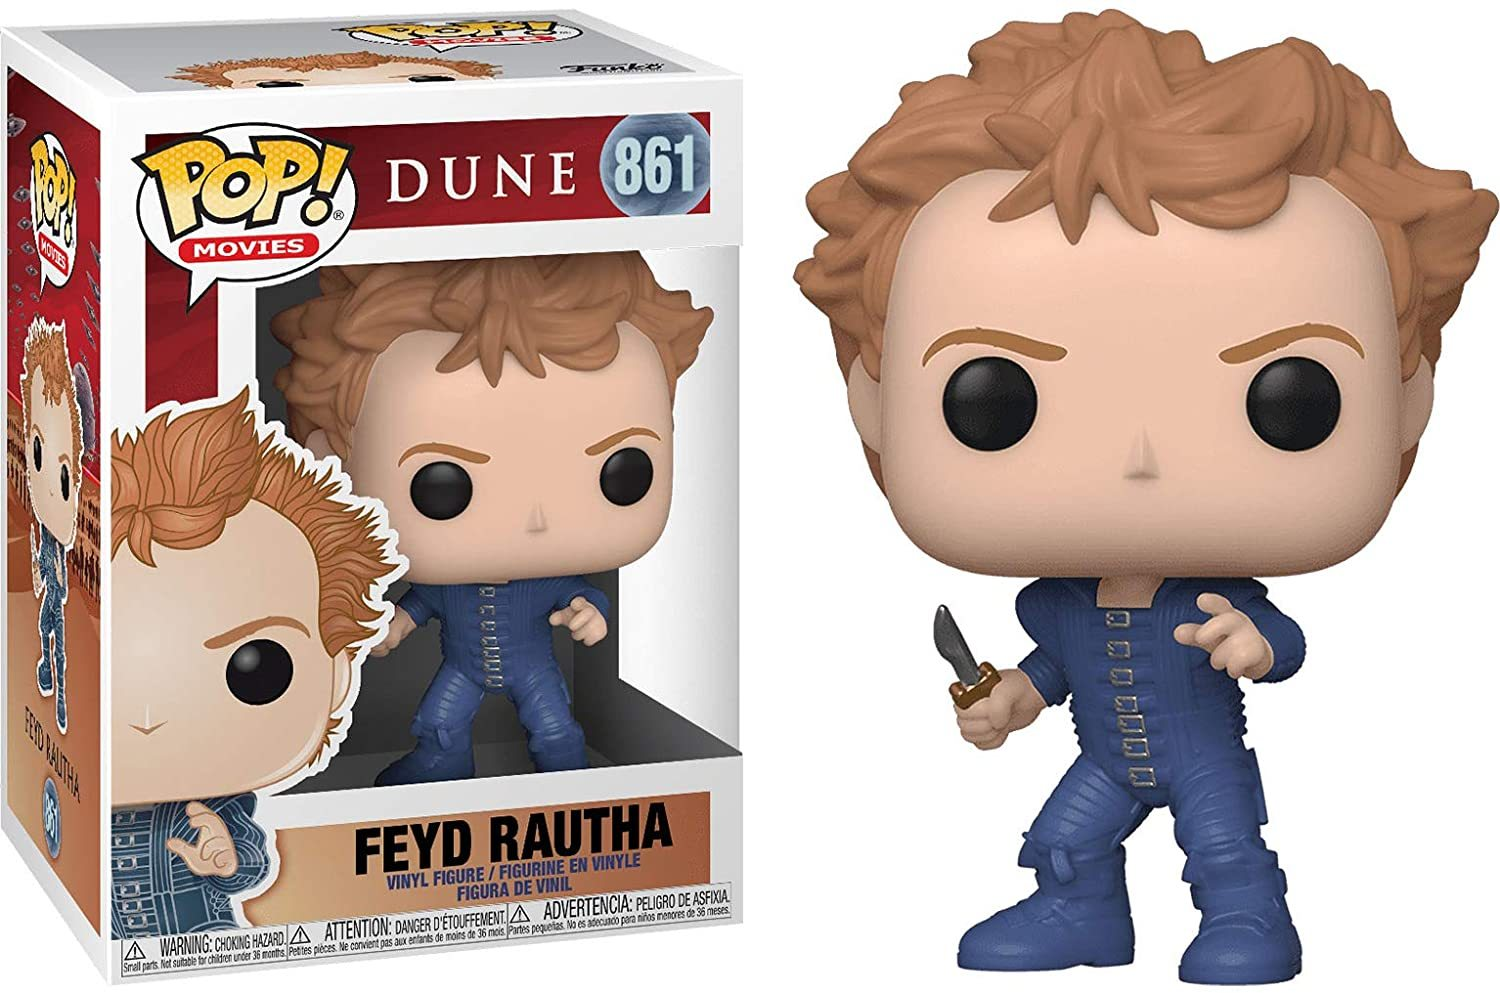 Dune Classic Feyd with Battle Outfit Pop! Vinyl Figure #861